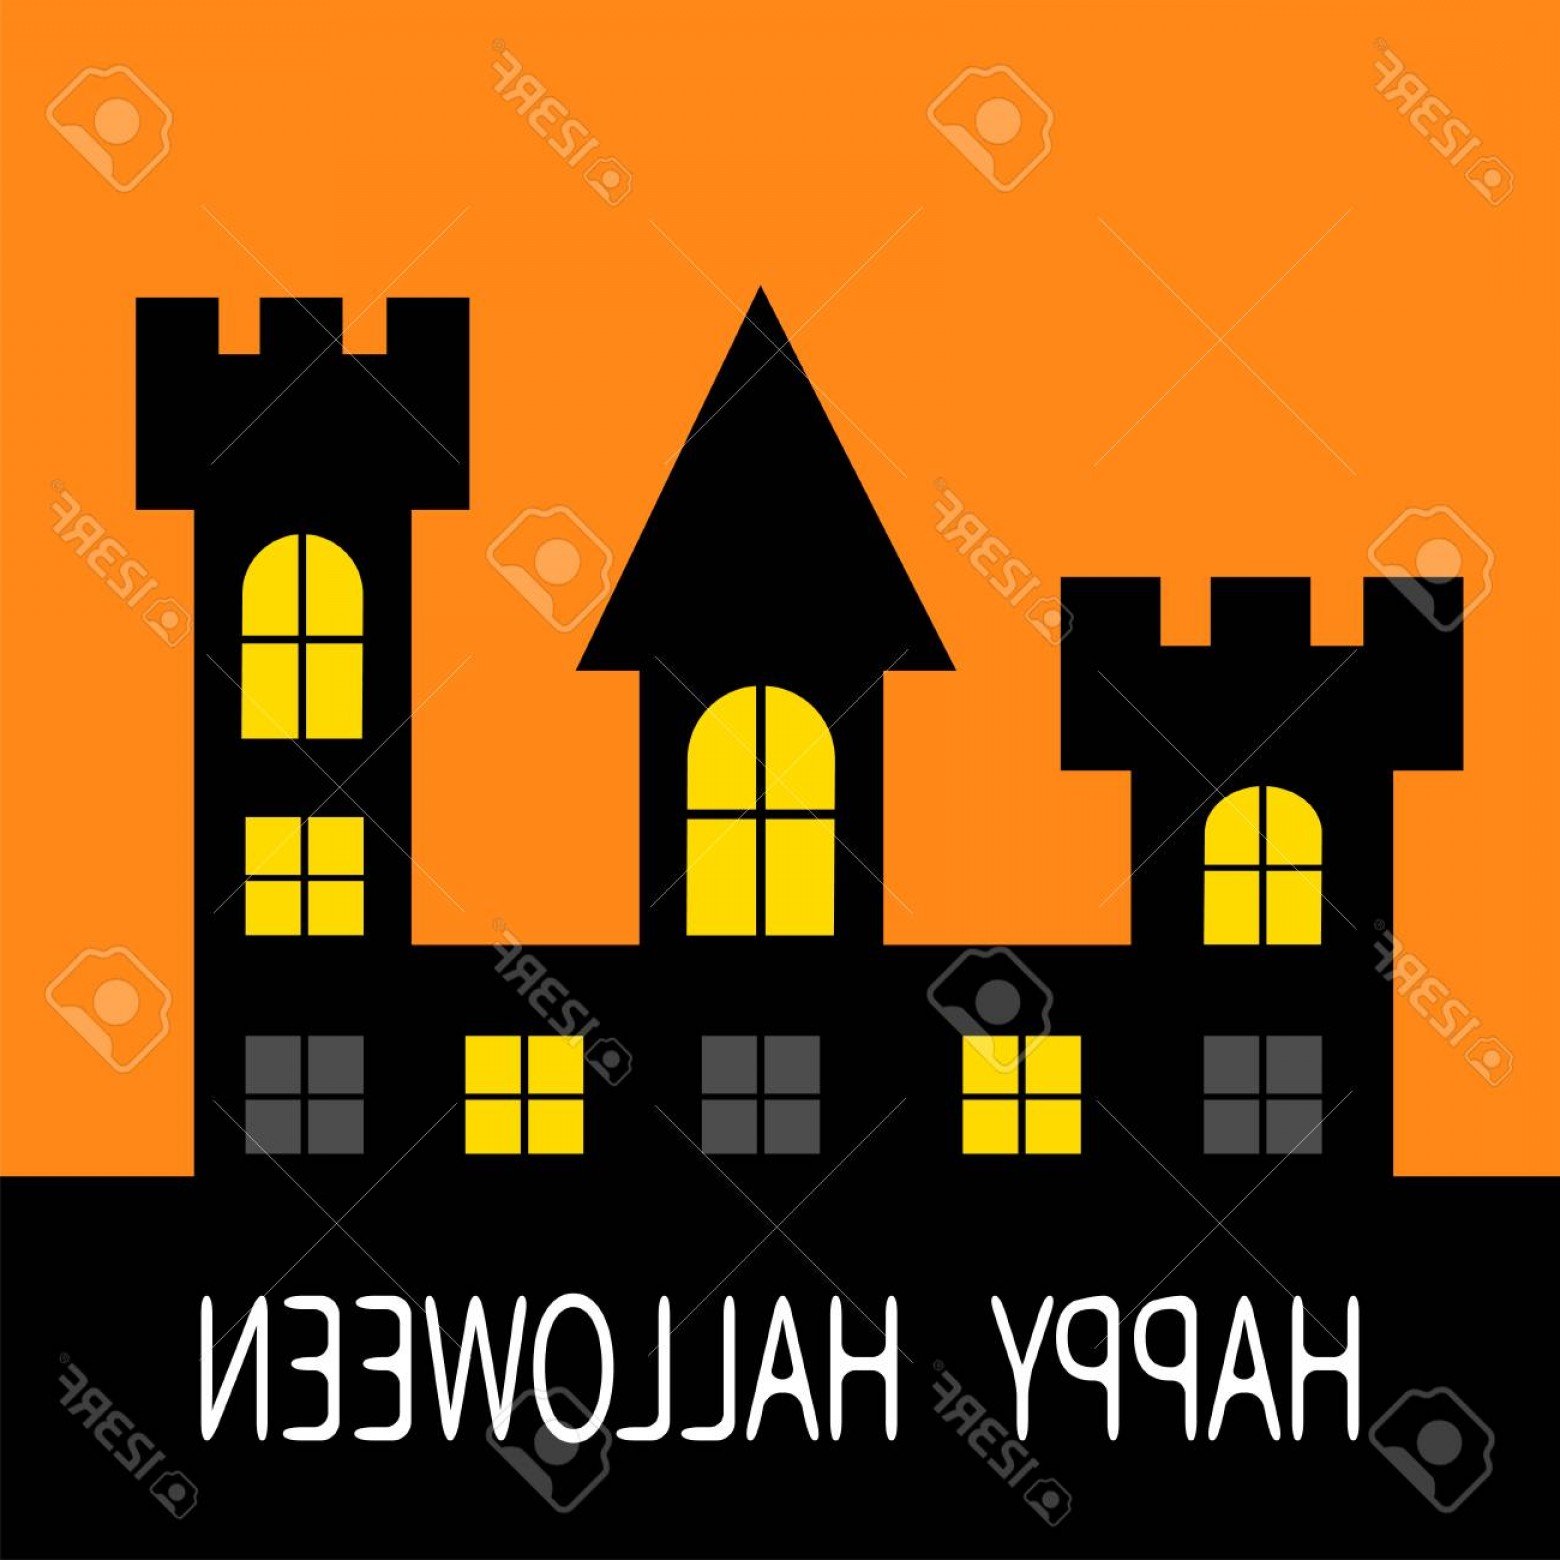 Halloween Haunted House Silhouette Vector: Photostock Vector Happy Halloween Haunted House Dark Black Tower Silhouette Switch On Yellow Light At The Pane Triangu